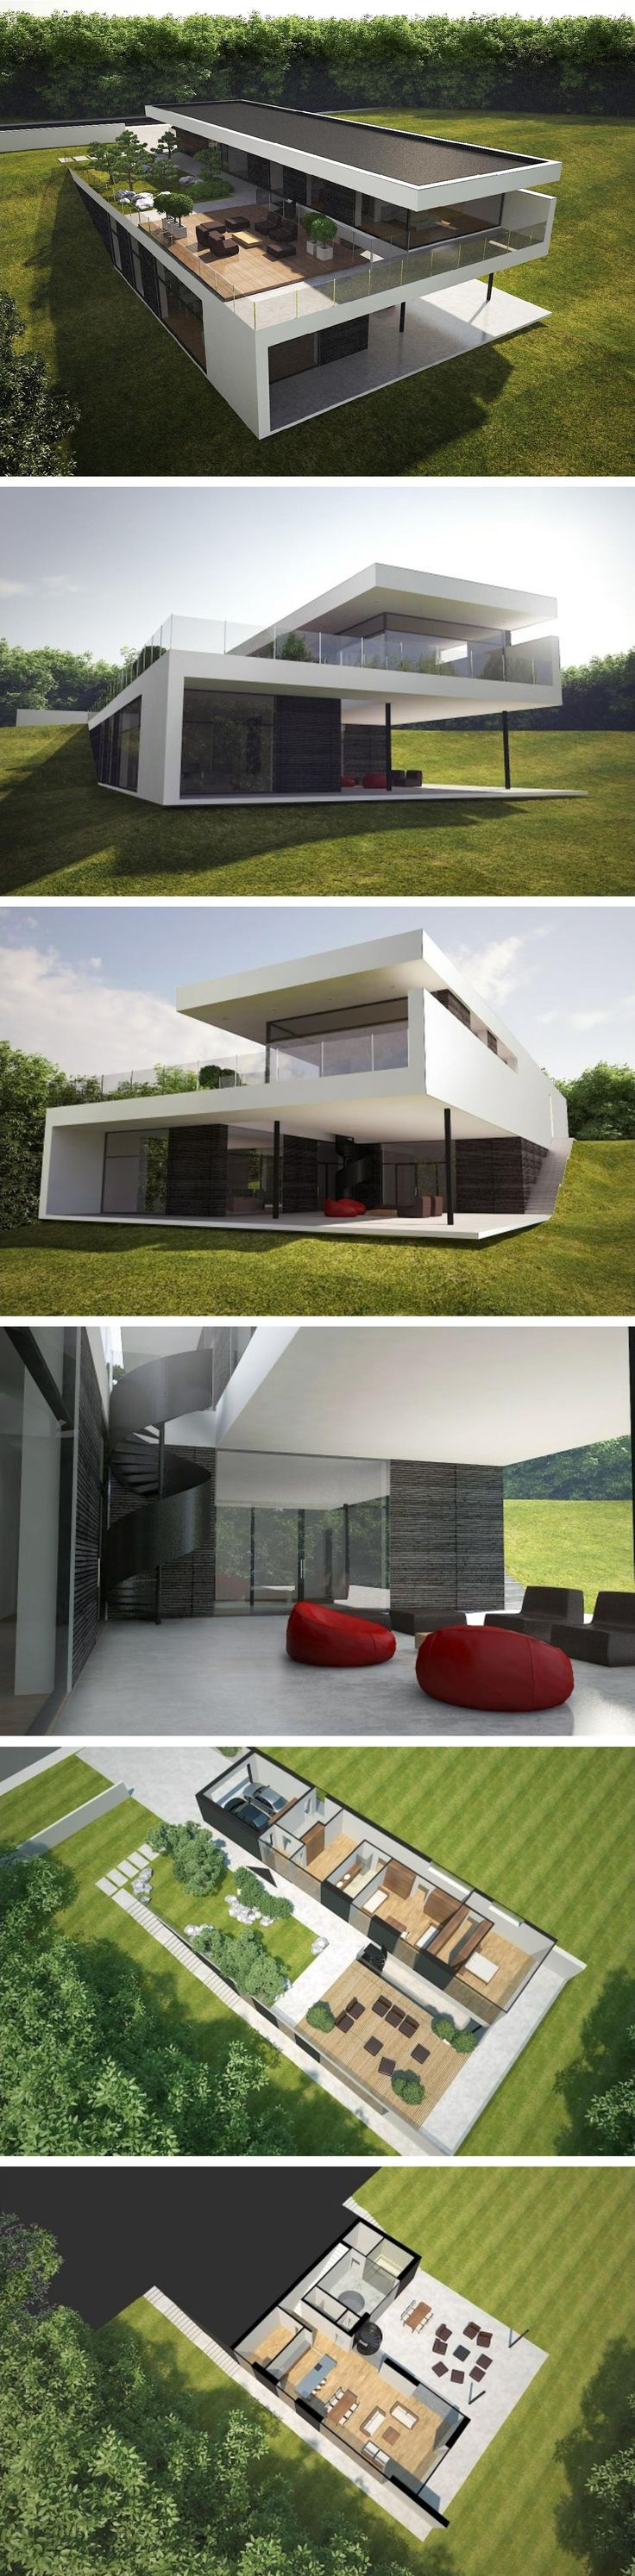 300 M2 House in Vilnius by NG architects. www.ngarchitects.lt